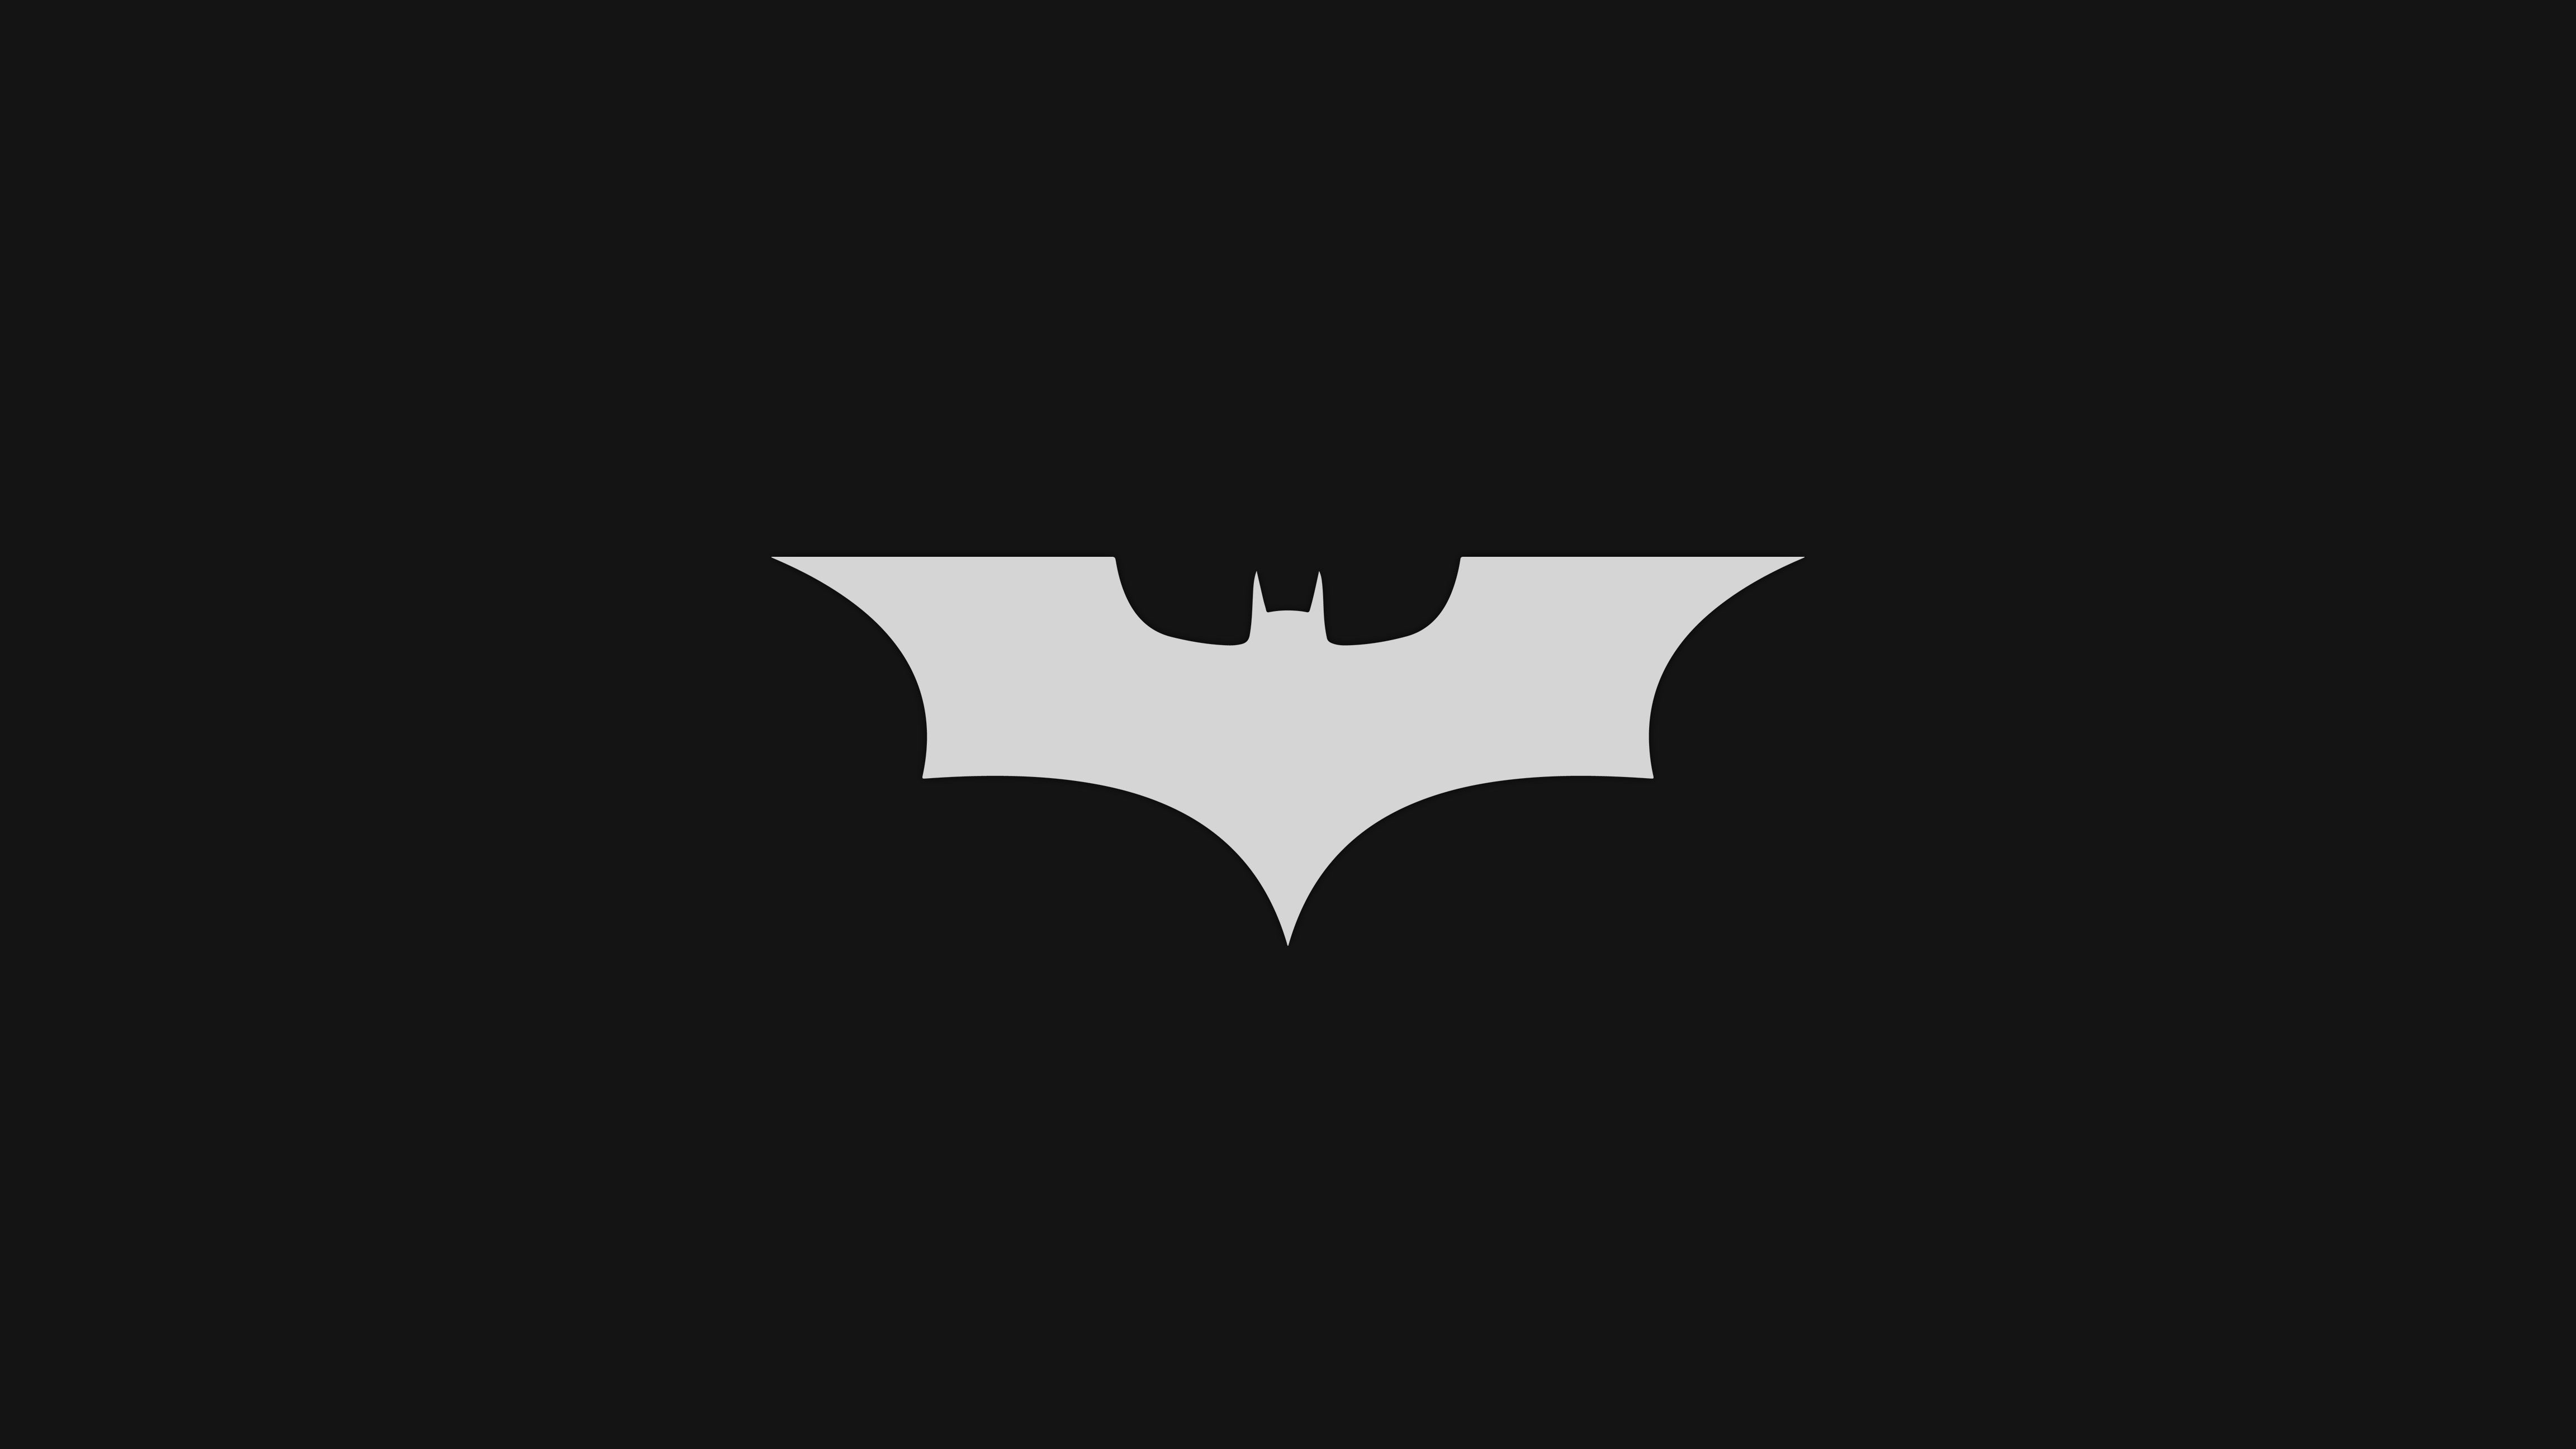 Batman 4k Wallpapers For Your Desktop Or Mobile Screen Free And